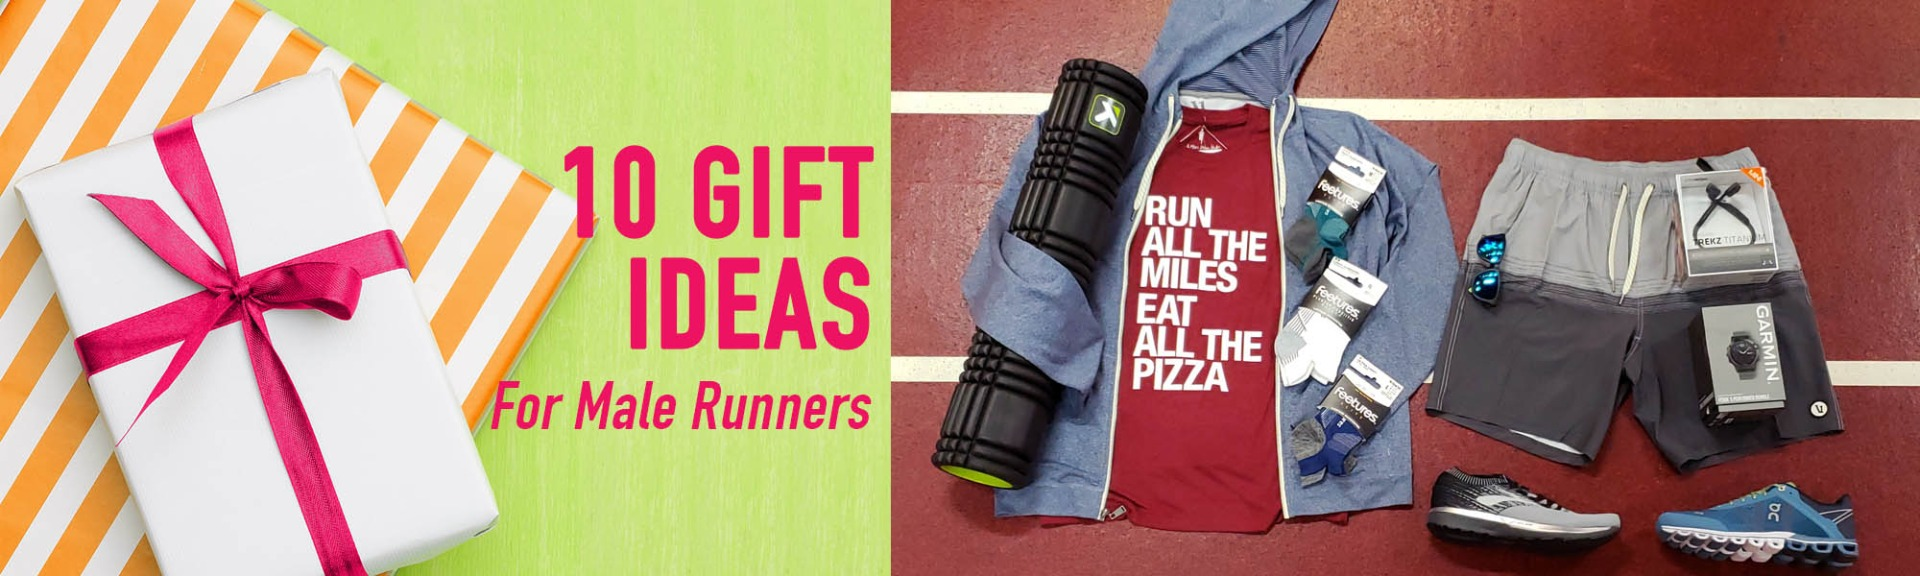 10 Gift Ideas for Male Runners